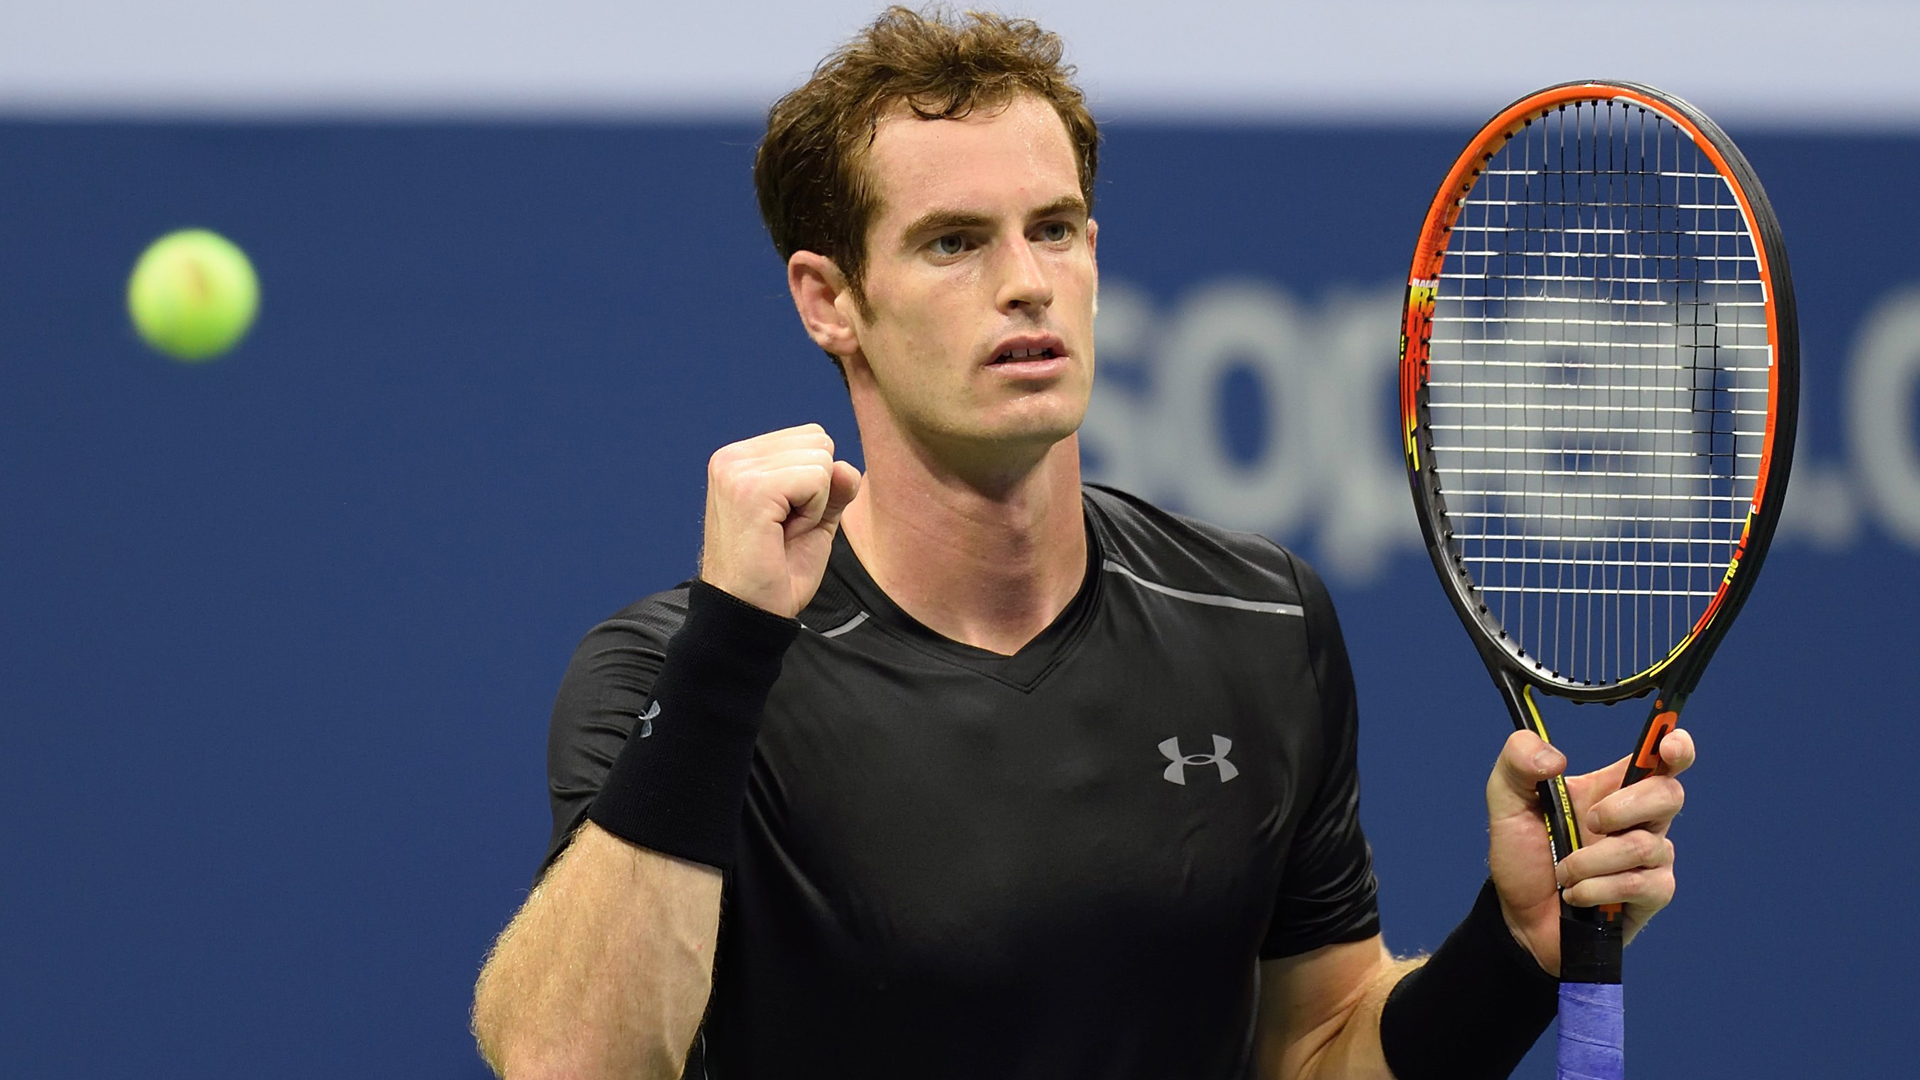 Andy Murray takes advantage of erratic Nick Kyrgios to advance at U.S. Open | Tennis | Sporting News